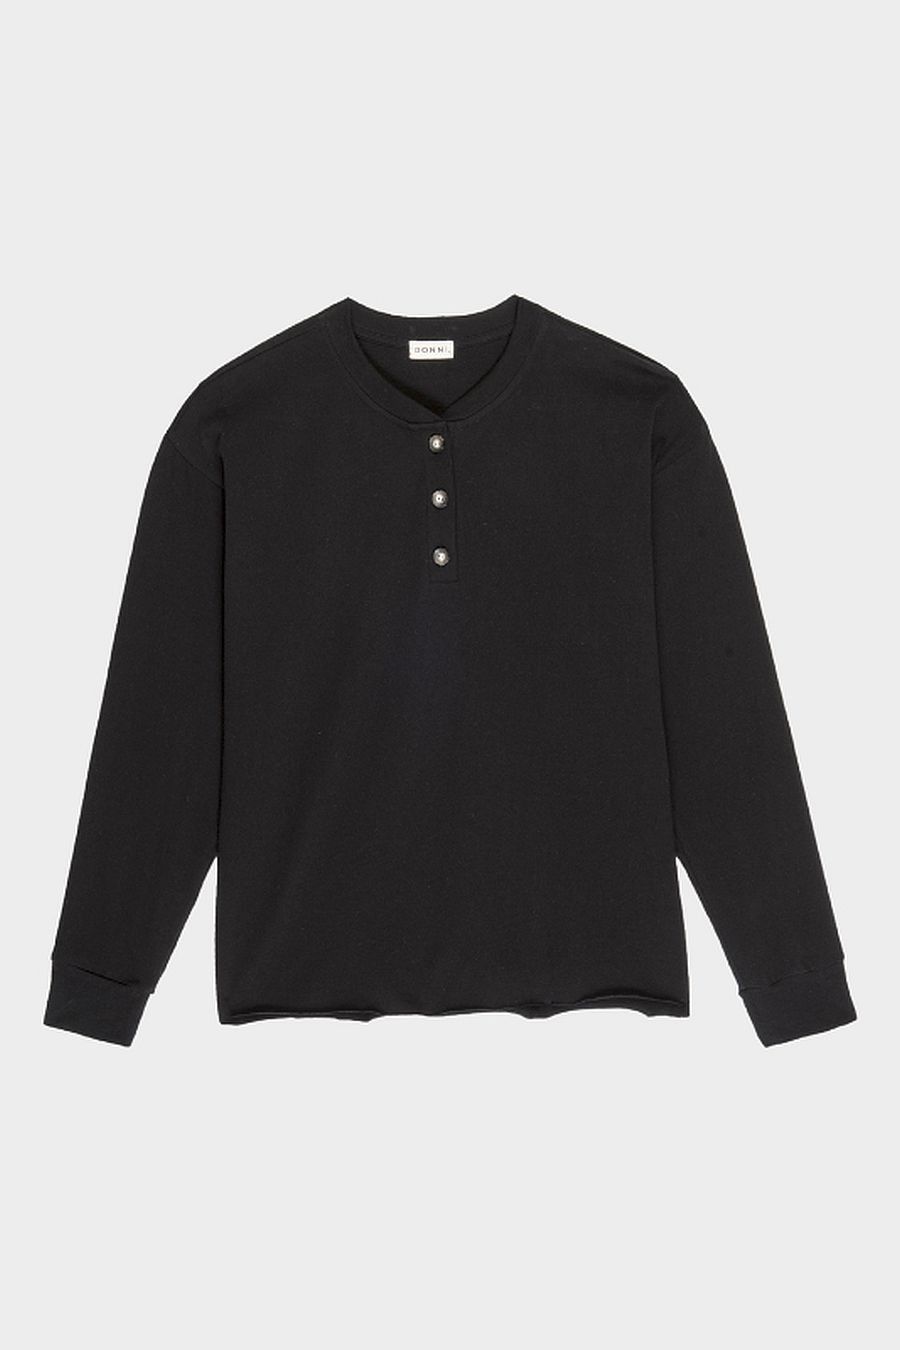 DONNI. Henley Tee - Jet